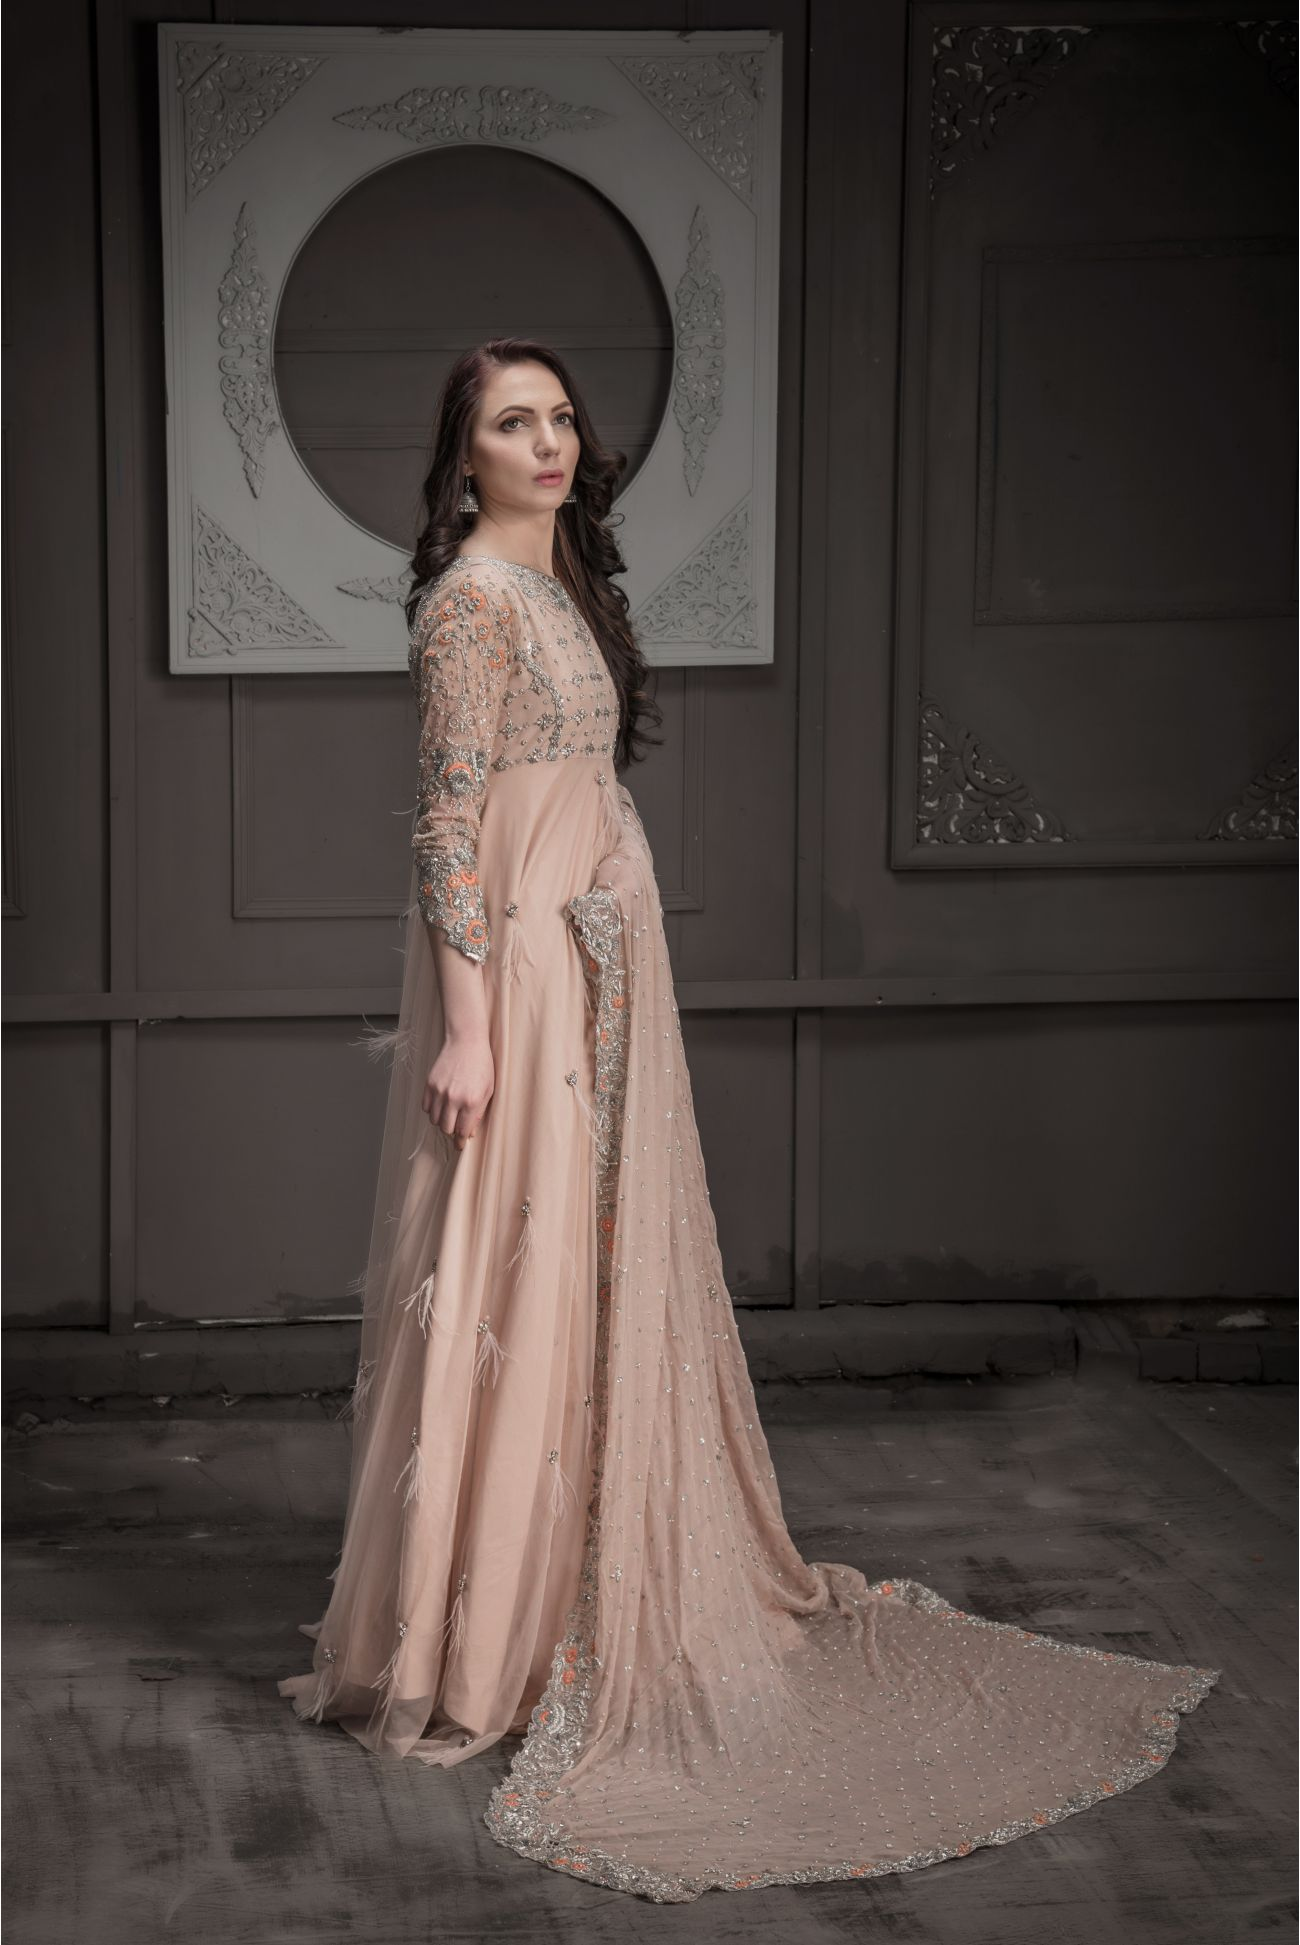 Buy Exclusive DUSAty Pink Shadi And Valima – Sdbd05 Online In USA, Uk & Pakistan - 05